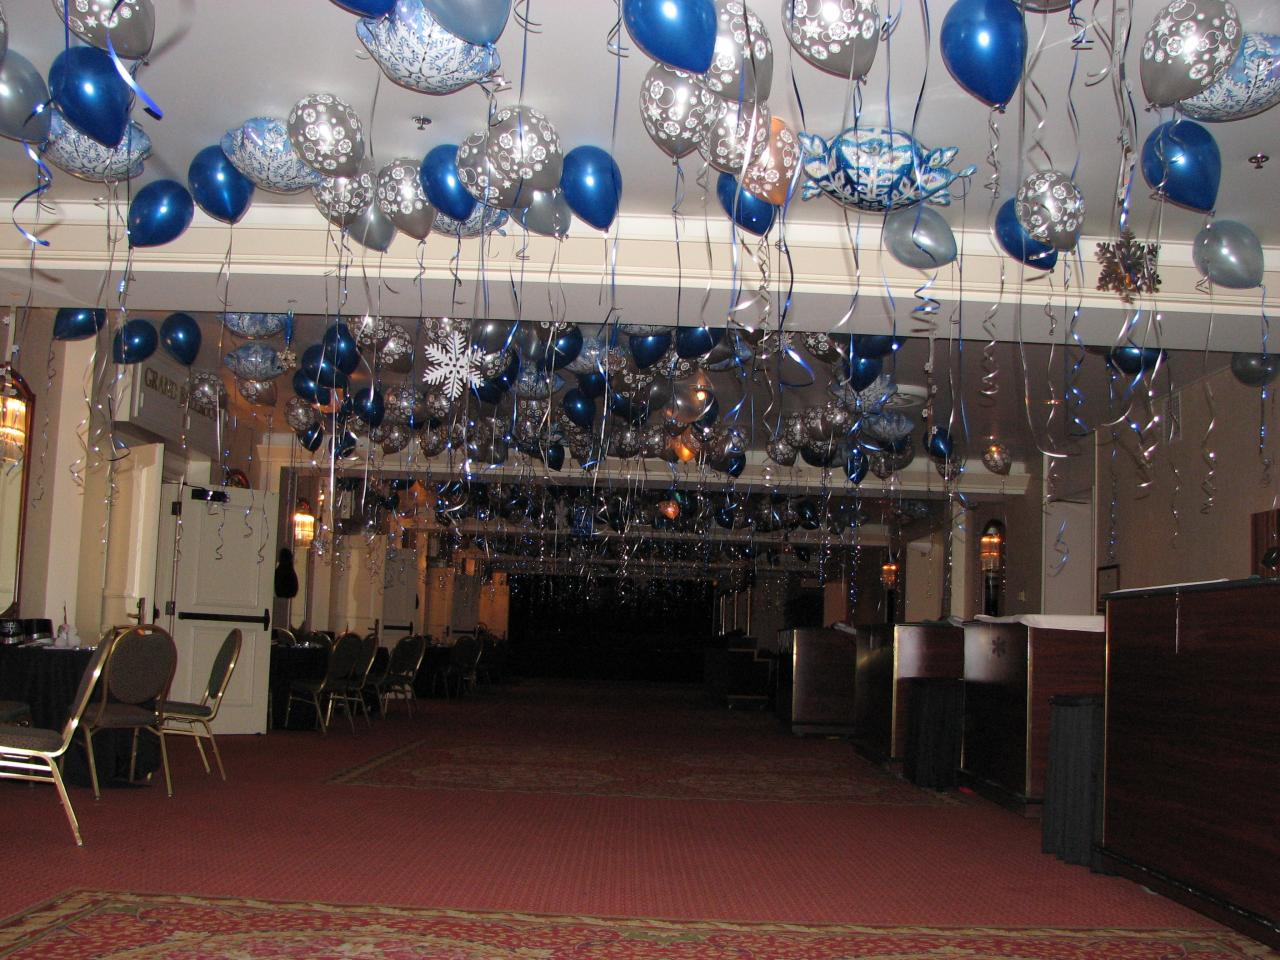 Balloon ceiling decorations party favors ideas for Balloon and streamer decoration ideas